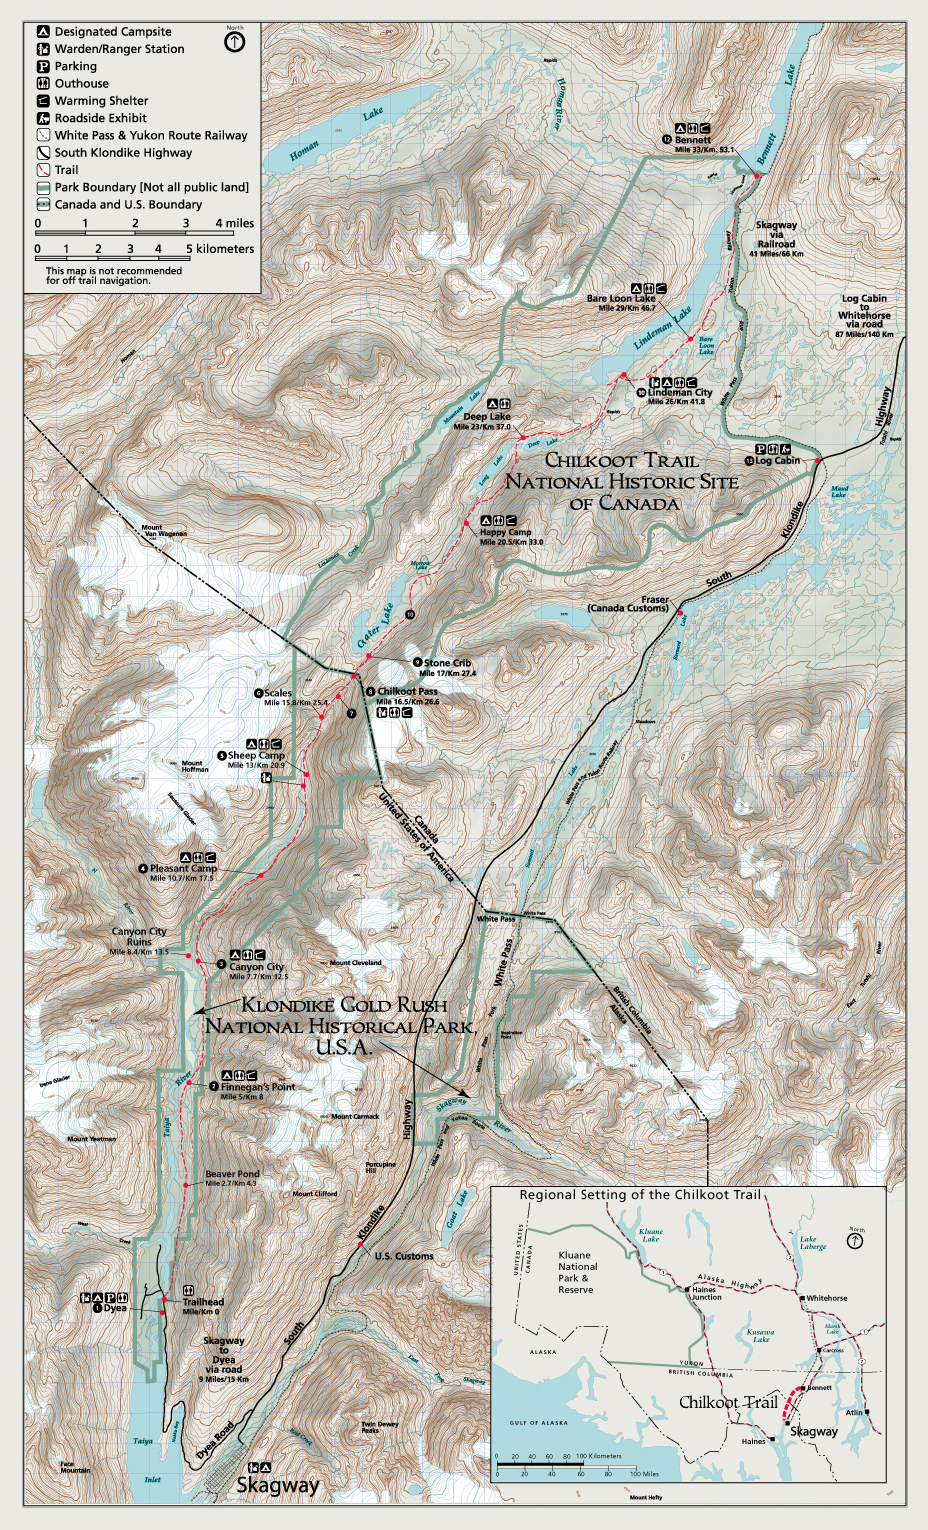 Chilkoot Trail National Historic Site